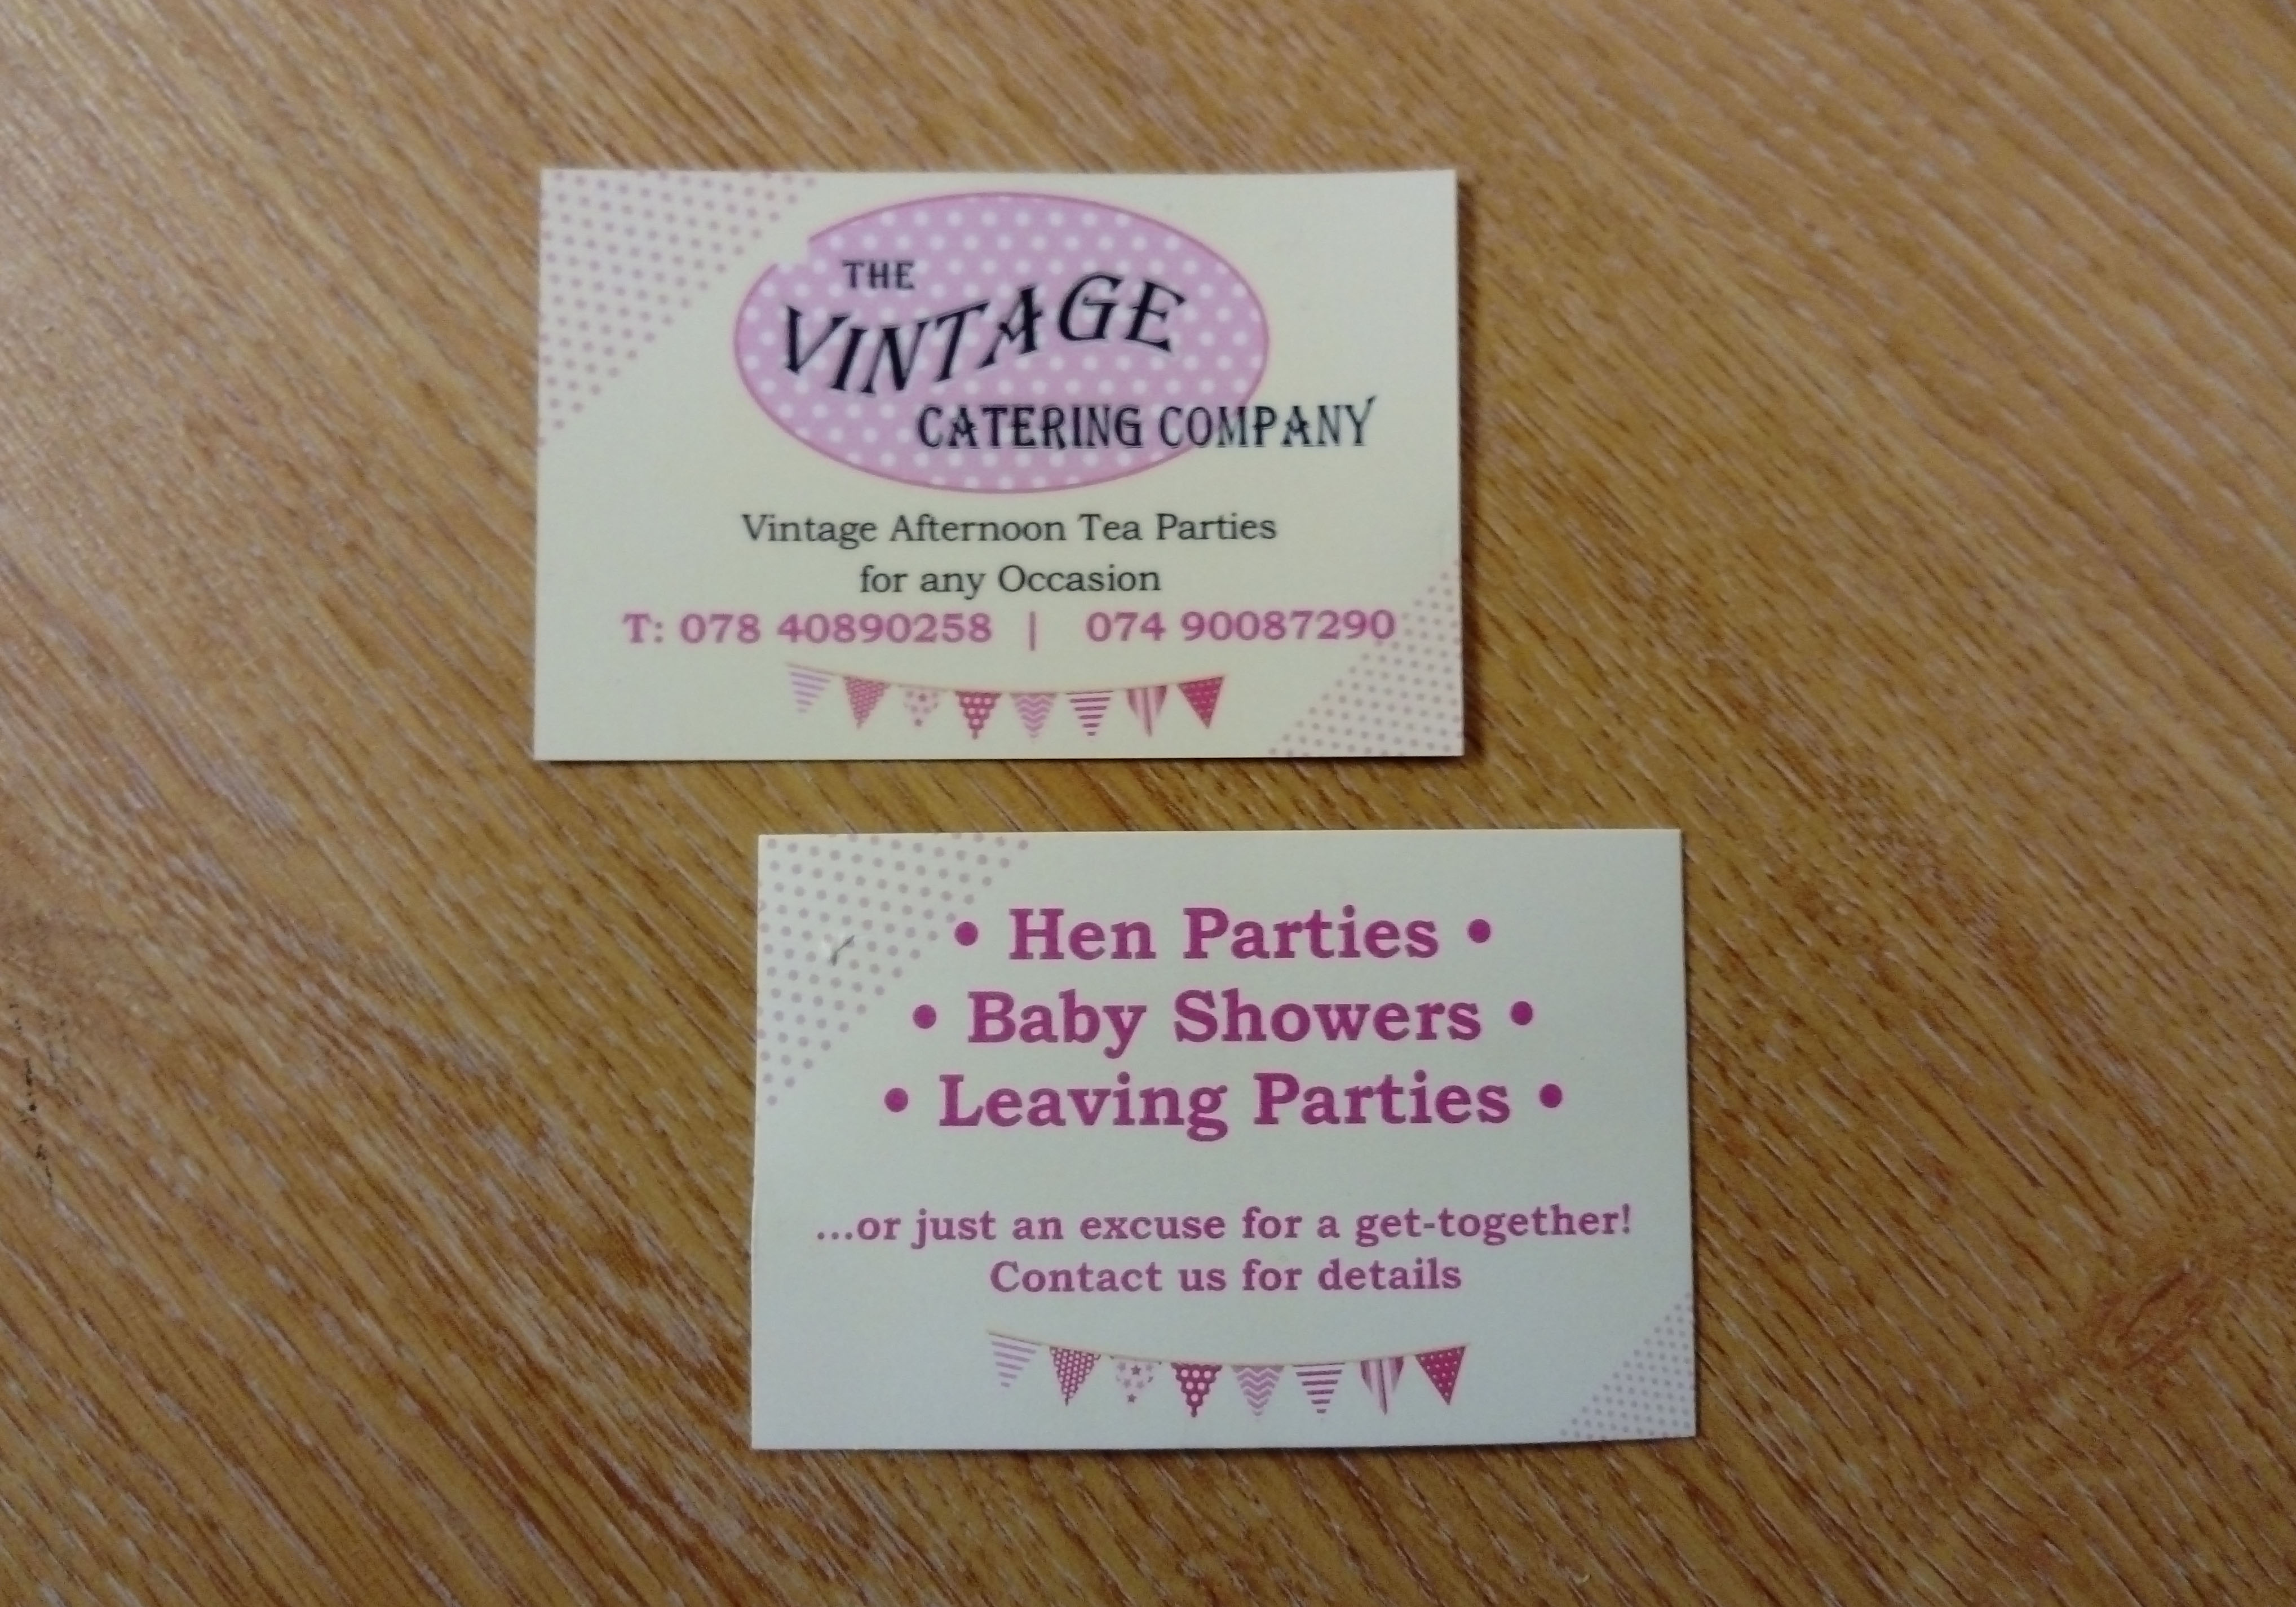 Vintage Catering Company - Business Cards